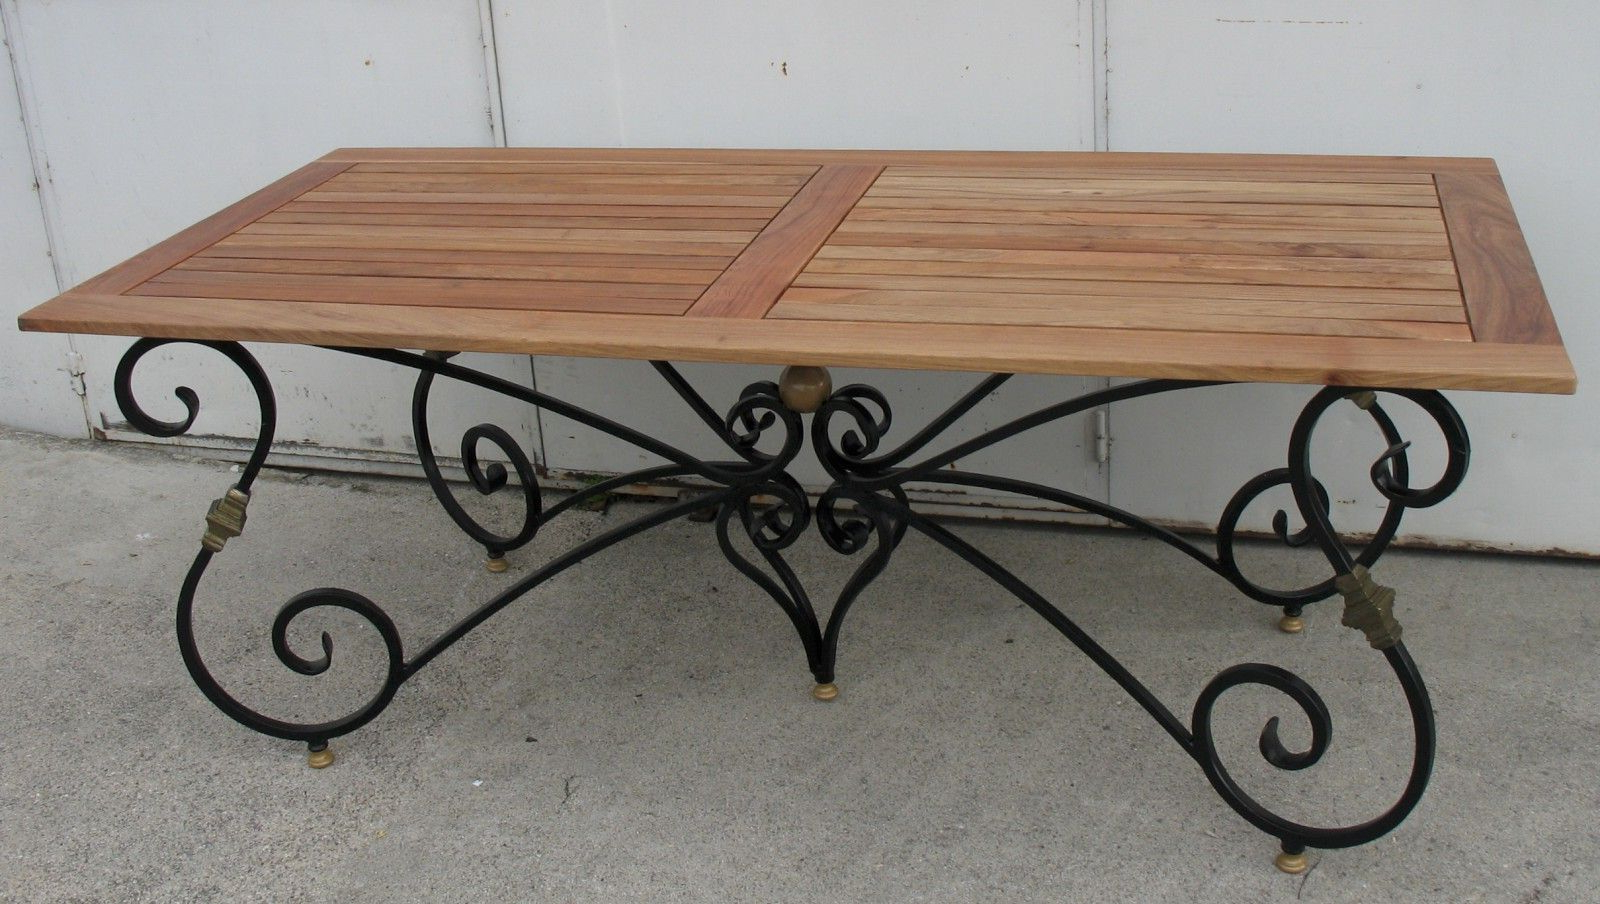 Preferred Dining Table With Base In Black And Gold Wrought Iron With Pertaining To Iron Wood Dining Tables (View 3 of 25)